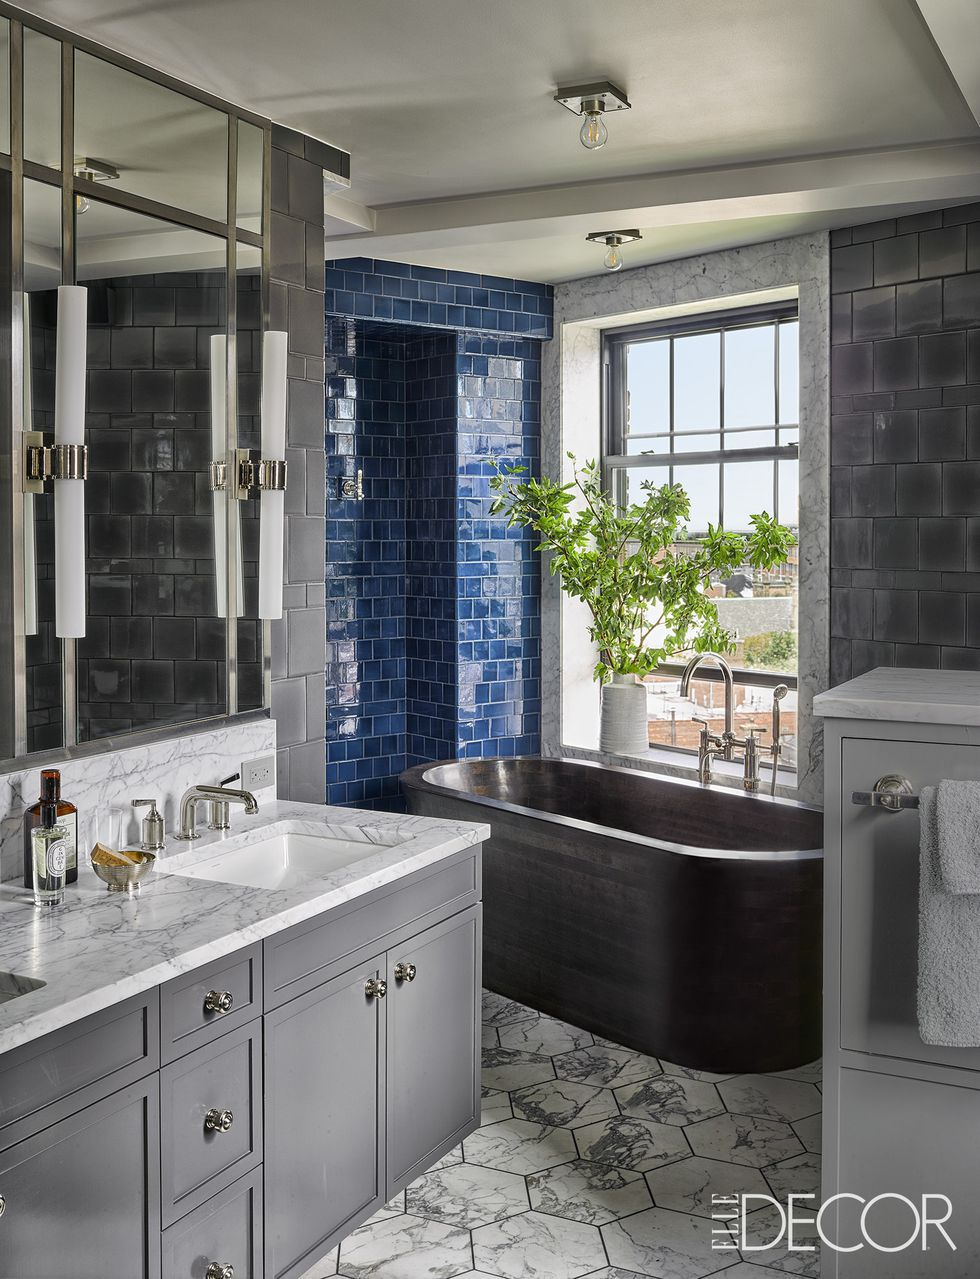 Elite 13 Blue Bathrooms Ideas - Blue Bathroom Decor intended for High Quality Blue Bathroom Photos